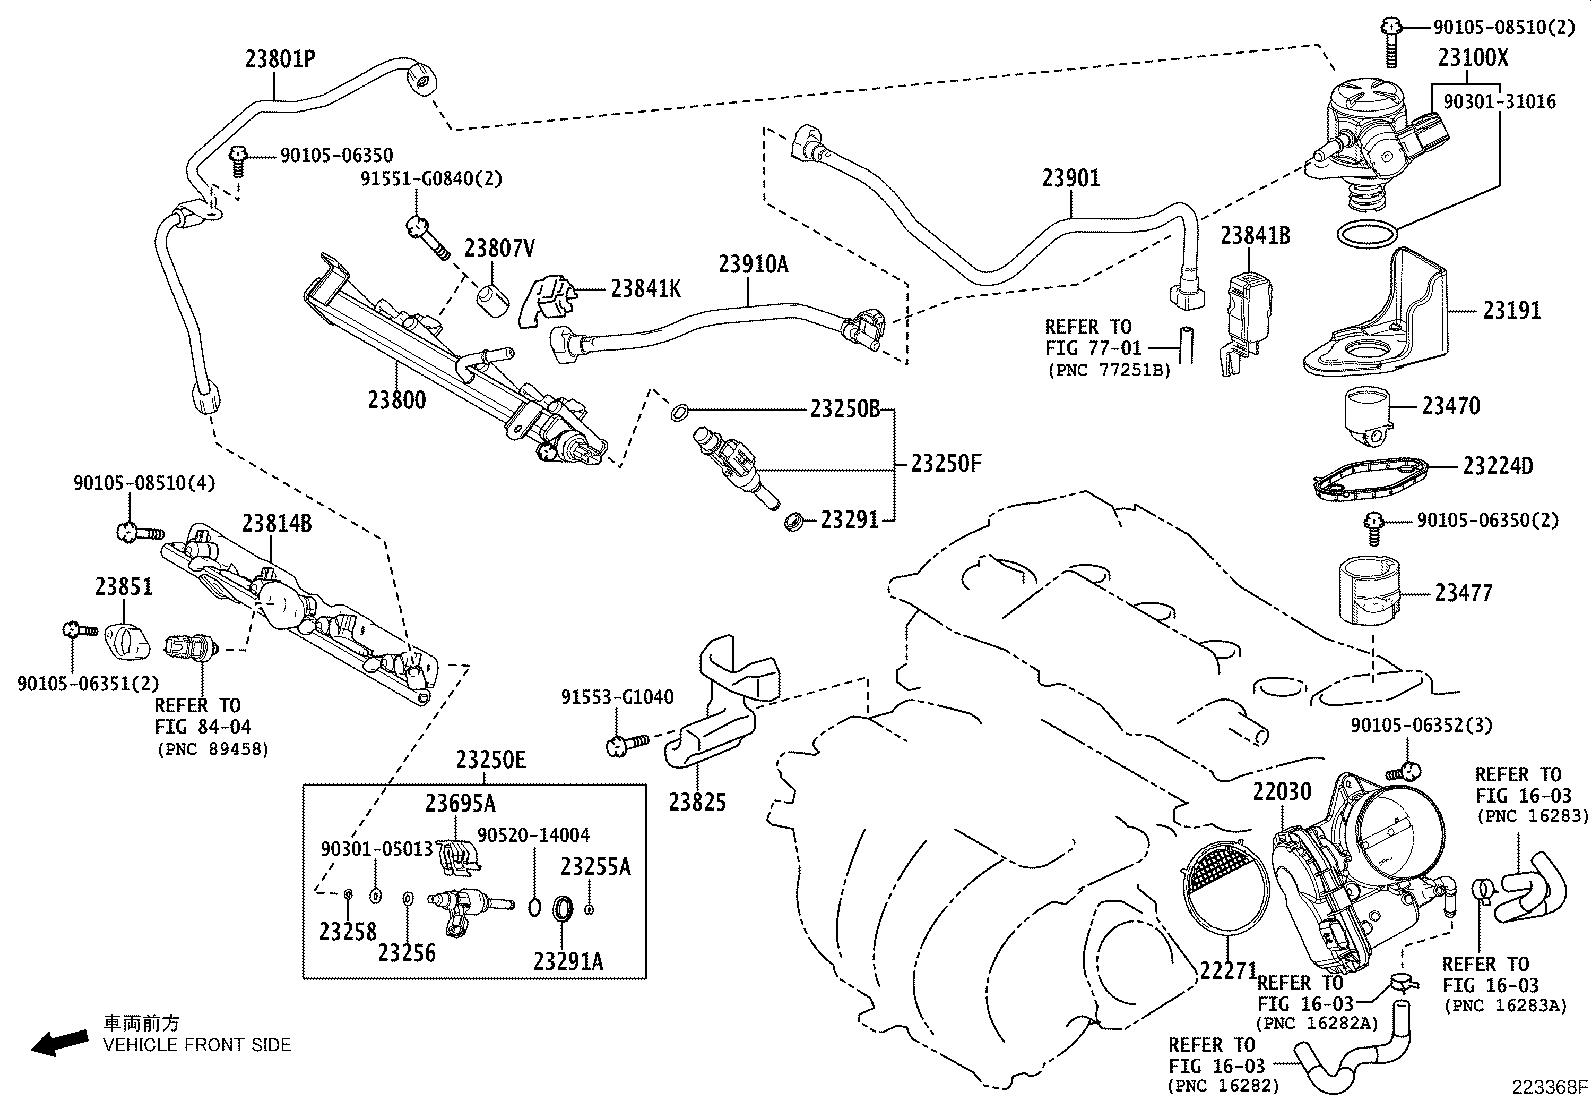 Toyota Camry Fuel Injection Throttle Body System